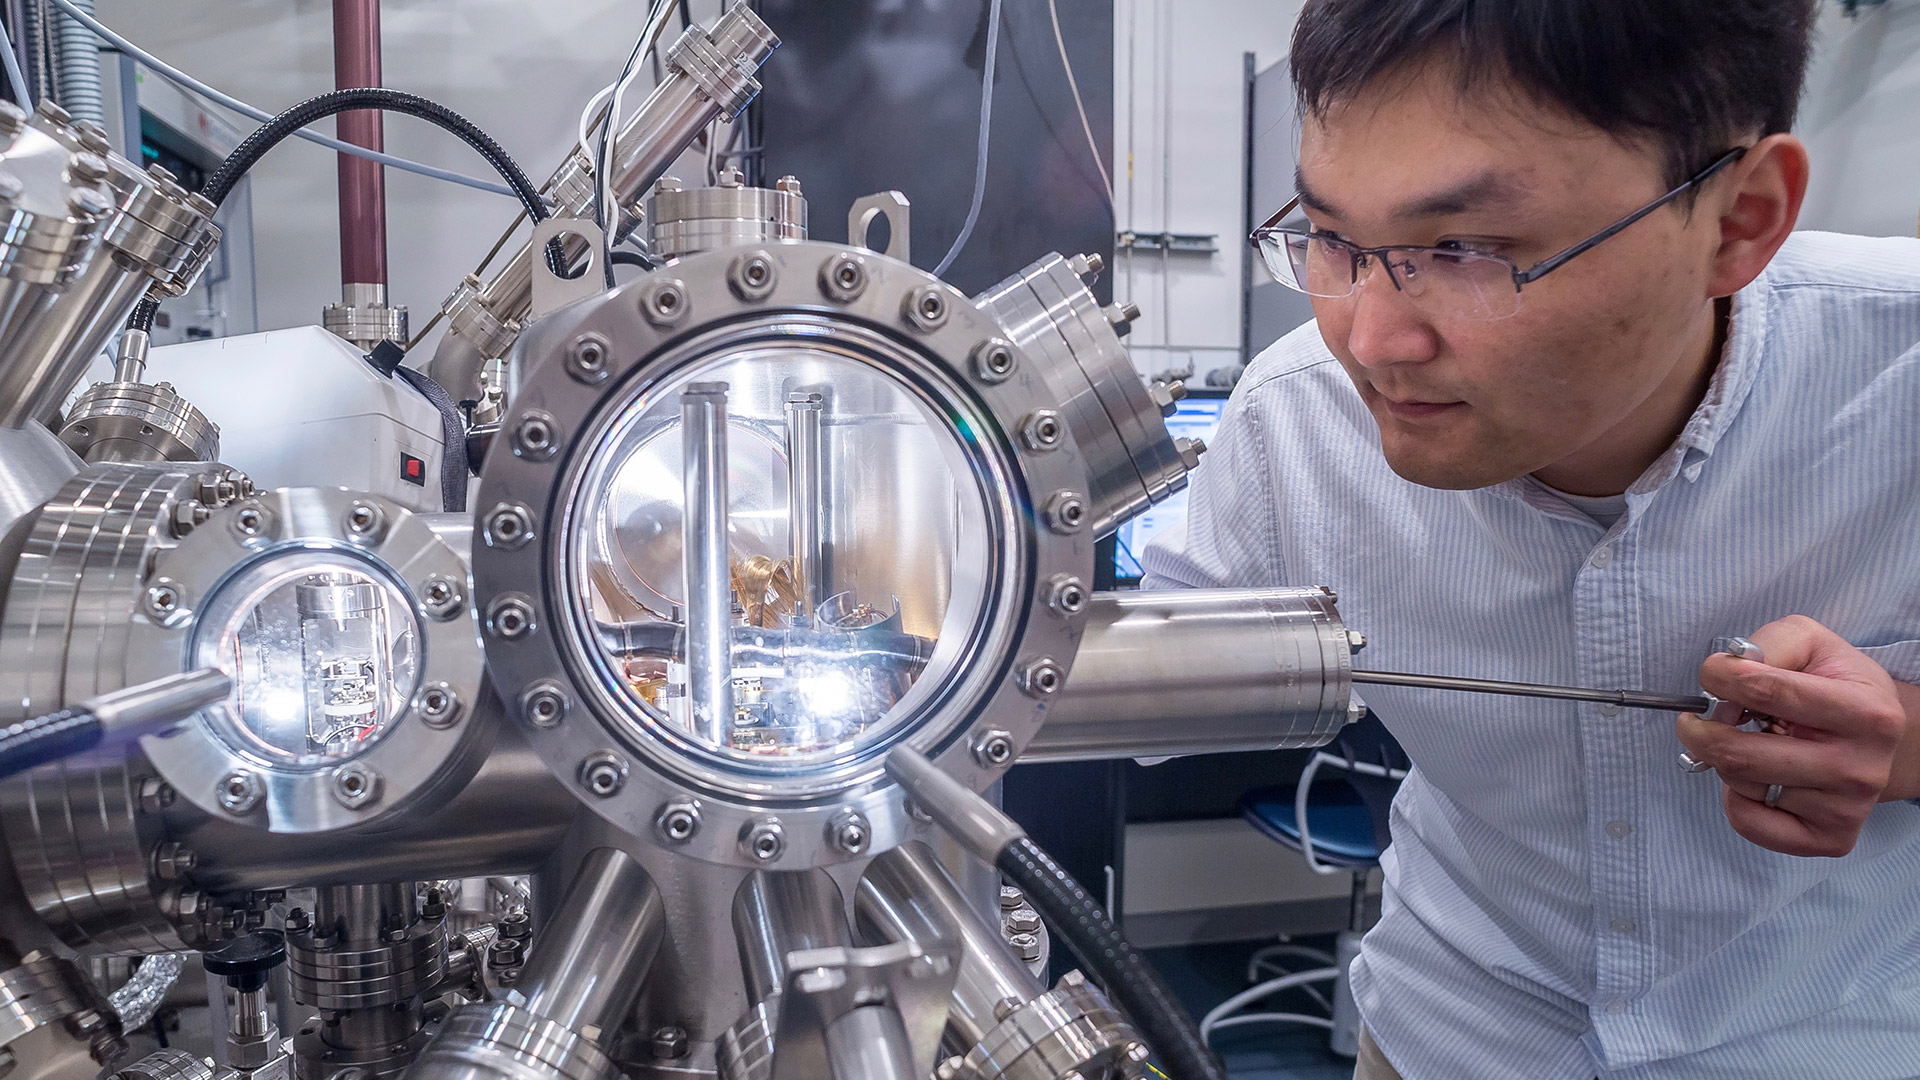 Postdoctoral researcher Rui Zhang at the Center for Nanoscale Materials uses an ultrahigh vacuum scanning tunneling microscope to image the surface structure of nanomaterials.